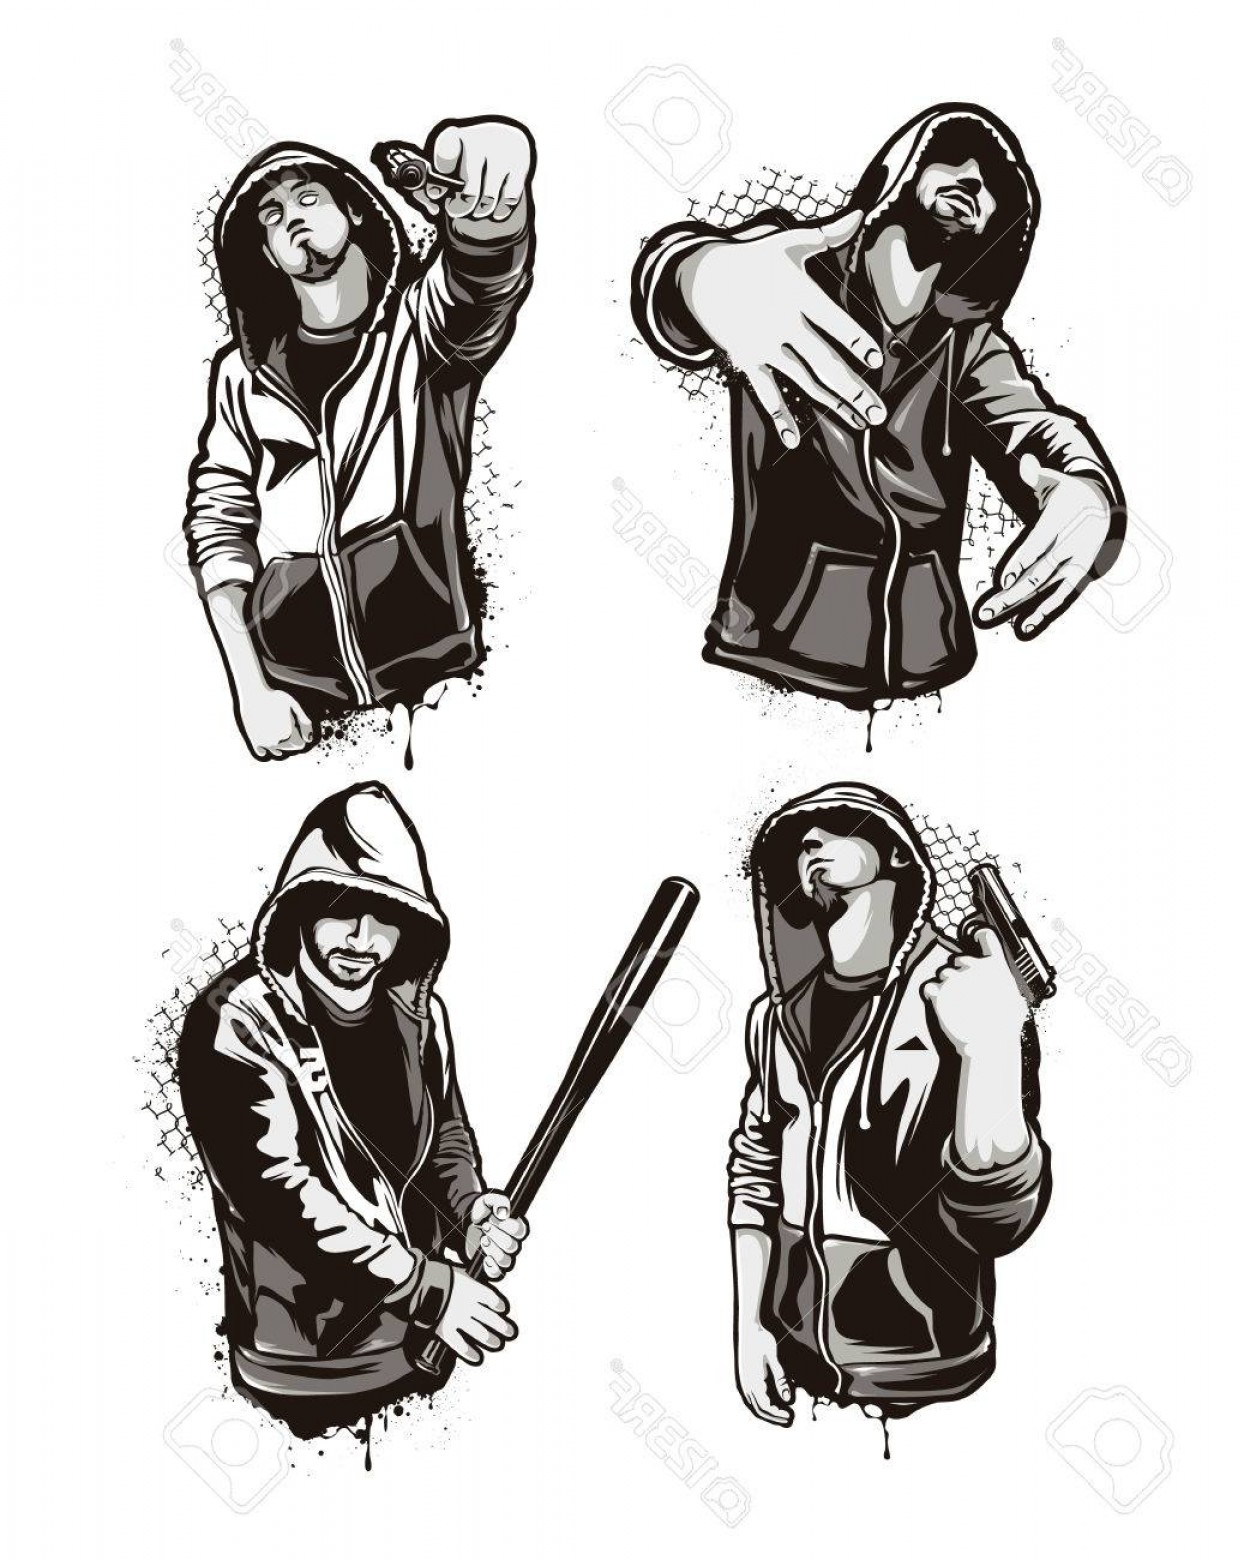 Warrior Vector Art: Photostock Vector Ghetto Warriors Set Of Four Vector Gangster Characters Grunge Style Vector Art